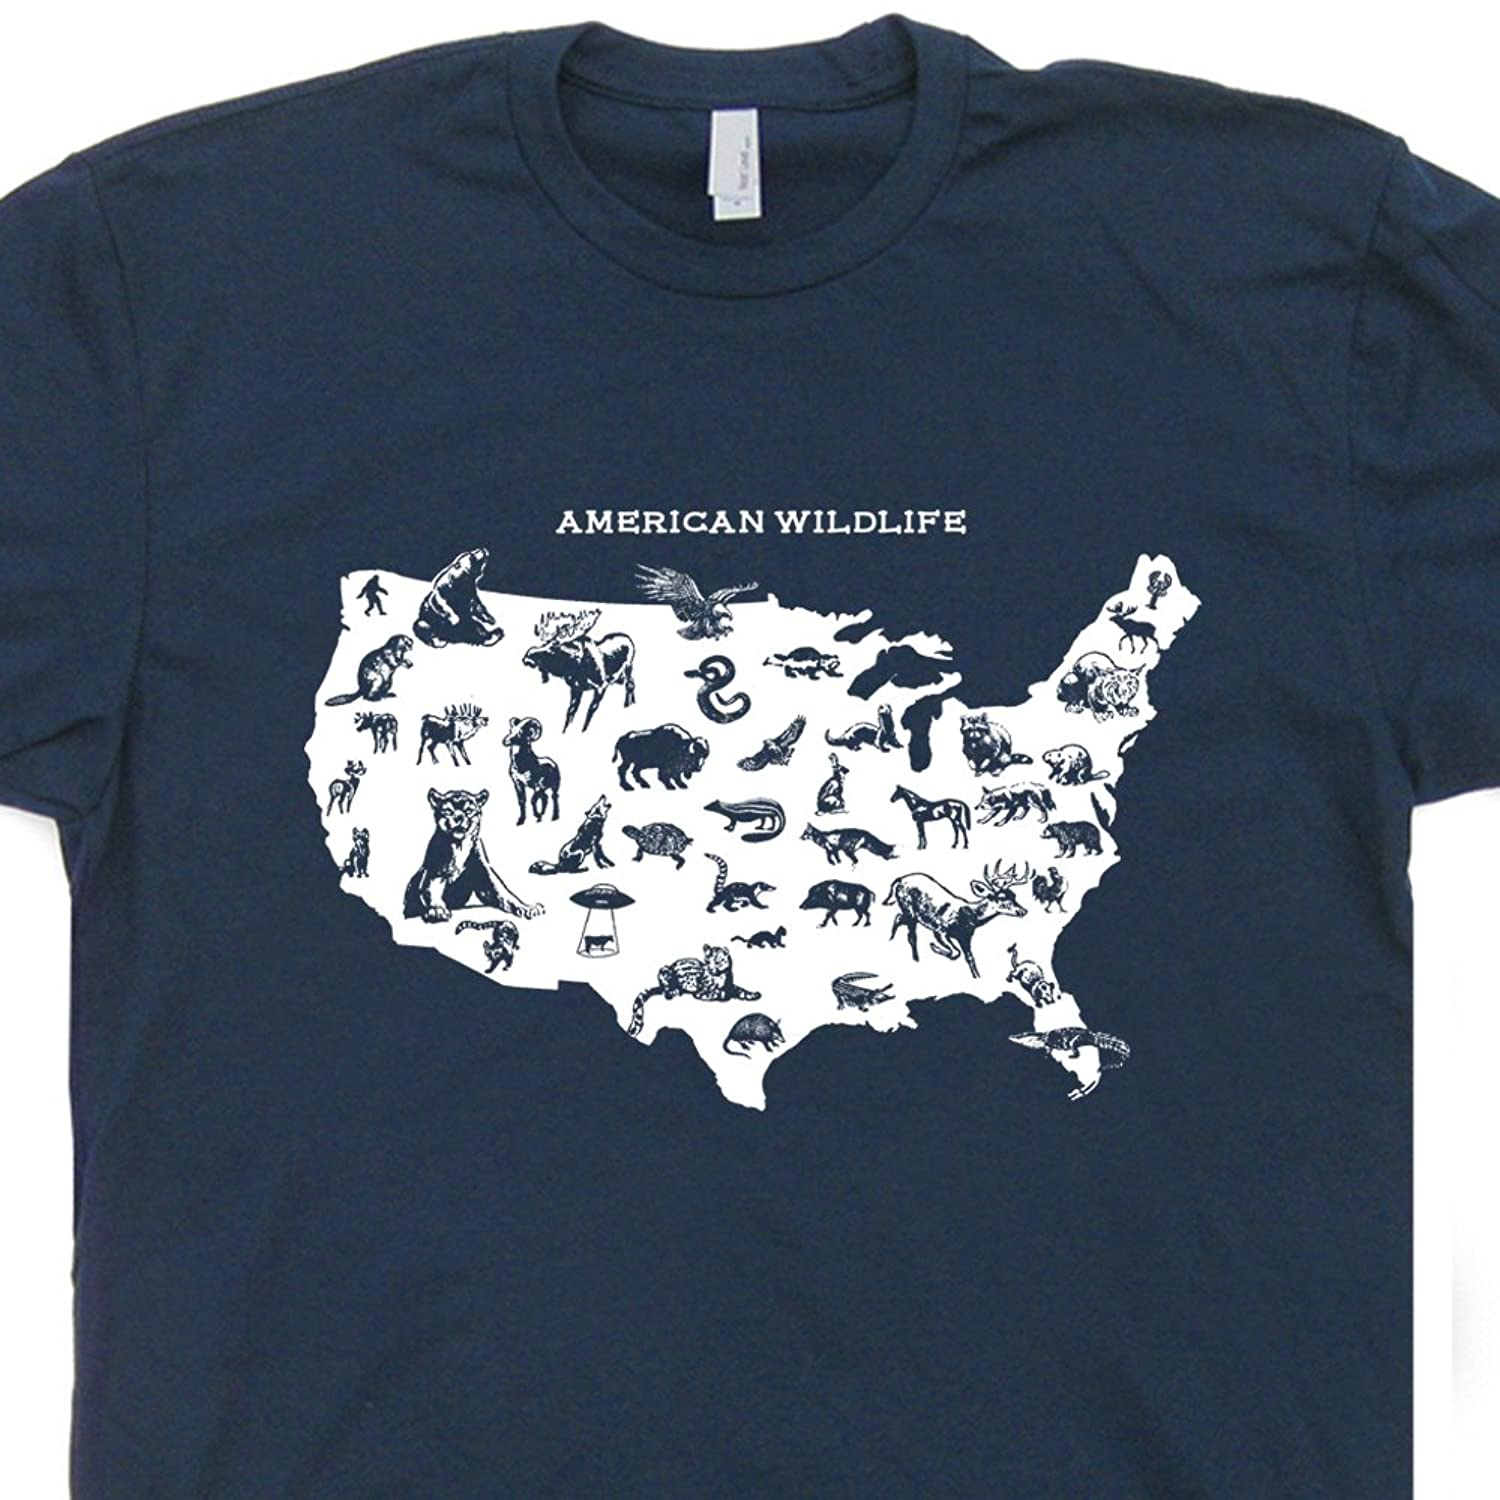 25  Adorable Wildlife T Shirts